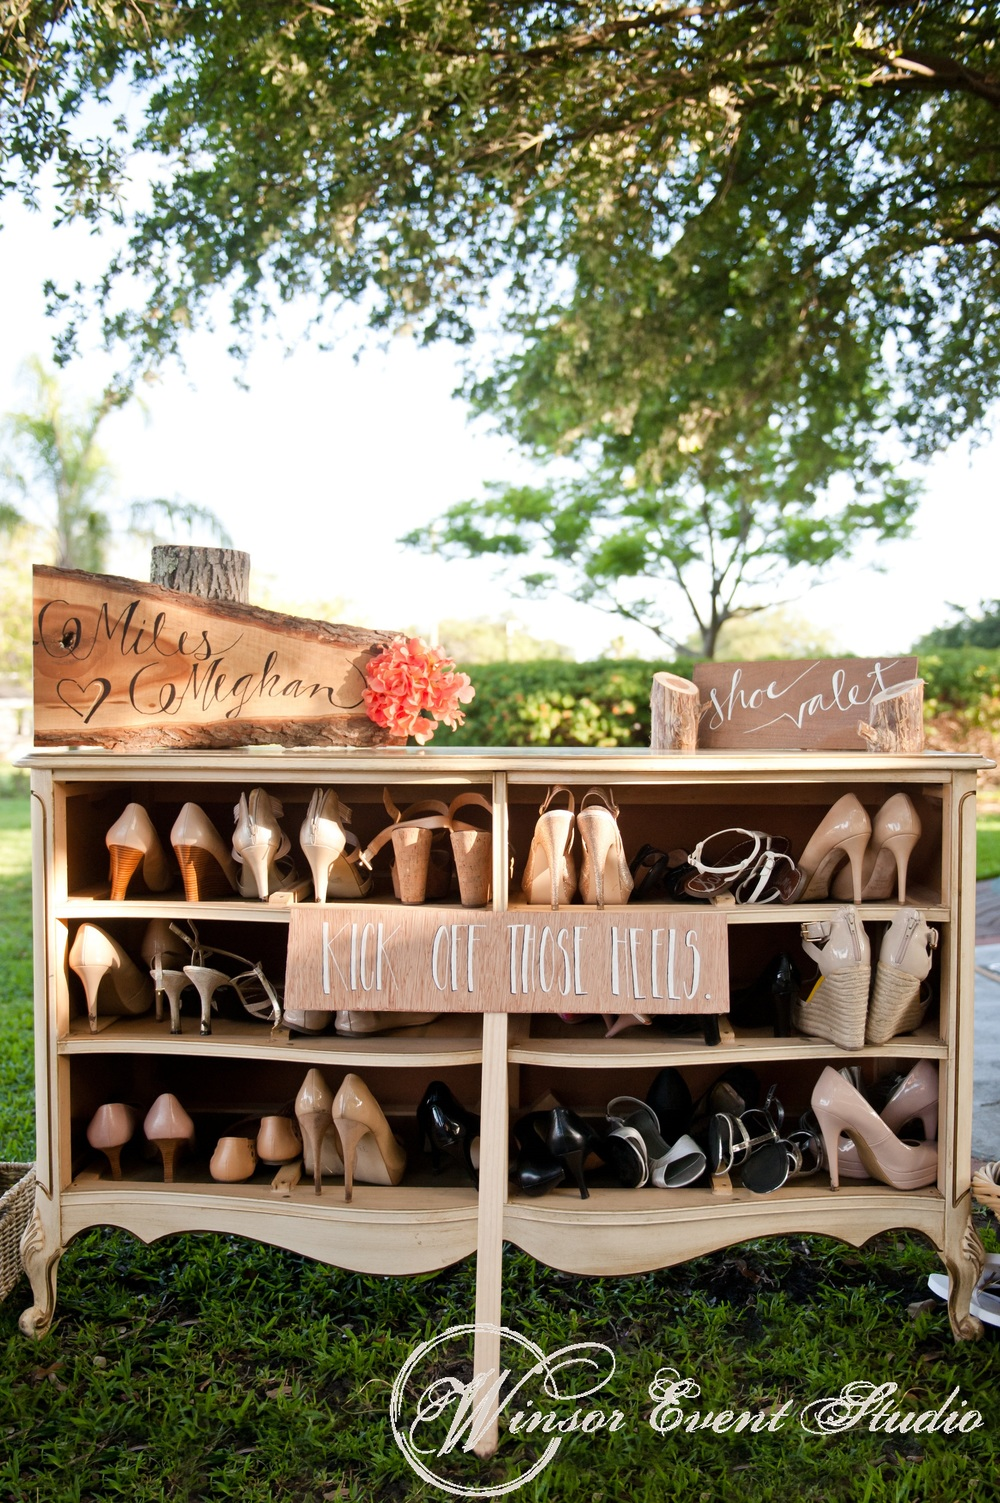 A vintage dresser 'shoe valet' invited guests to kick off their heels and grab a pair of flip flops